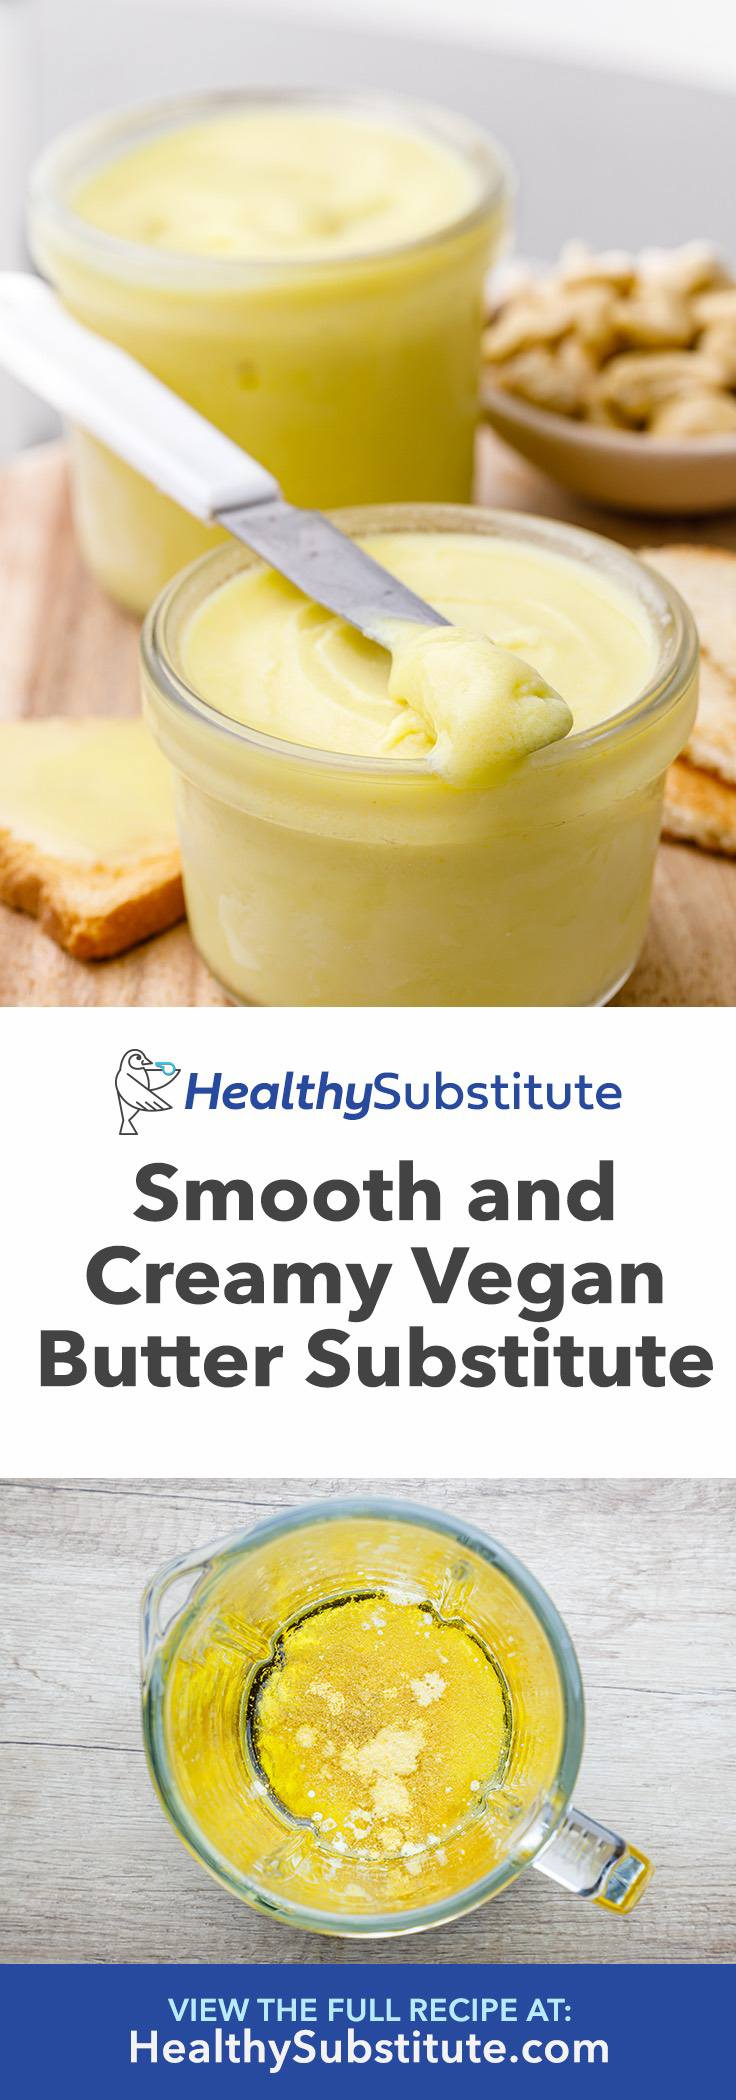 Smooth and Creamy Vegan Butter Substitute